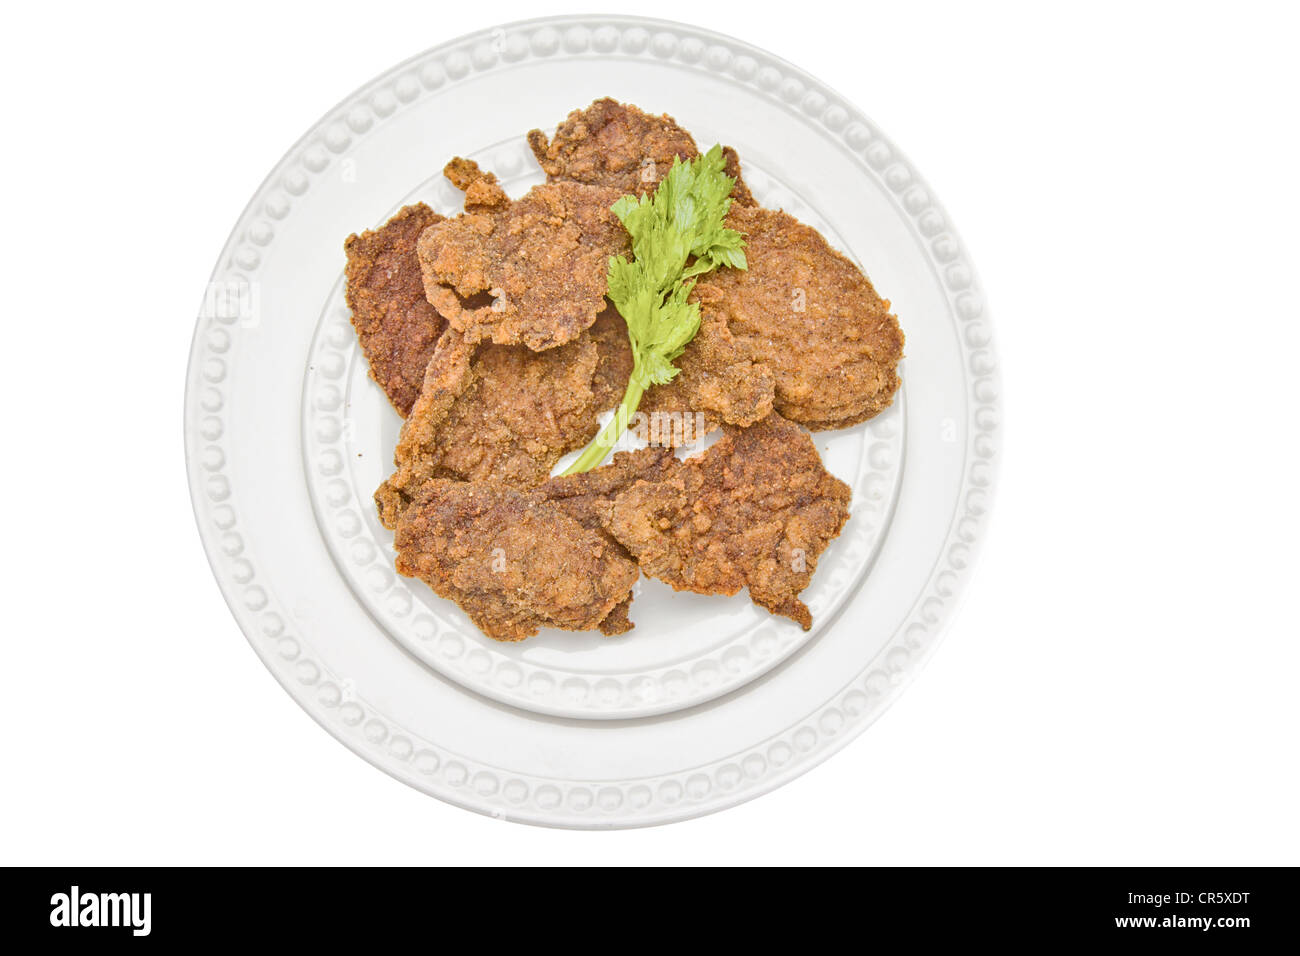 Chicken cutlet served on a plate and decorated with parsley leaf - Stock Image